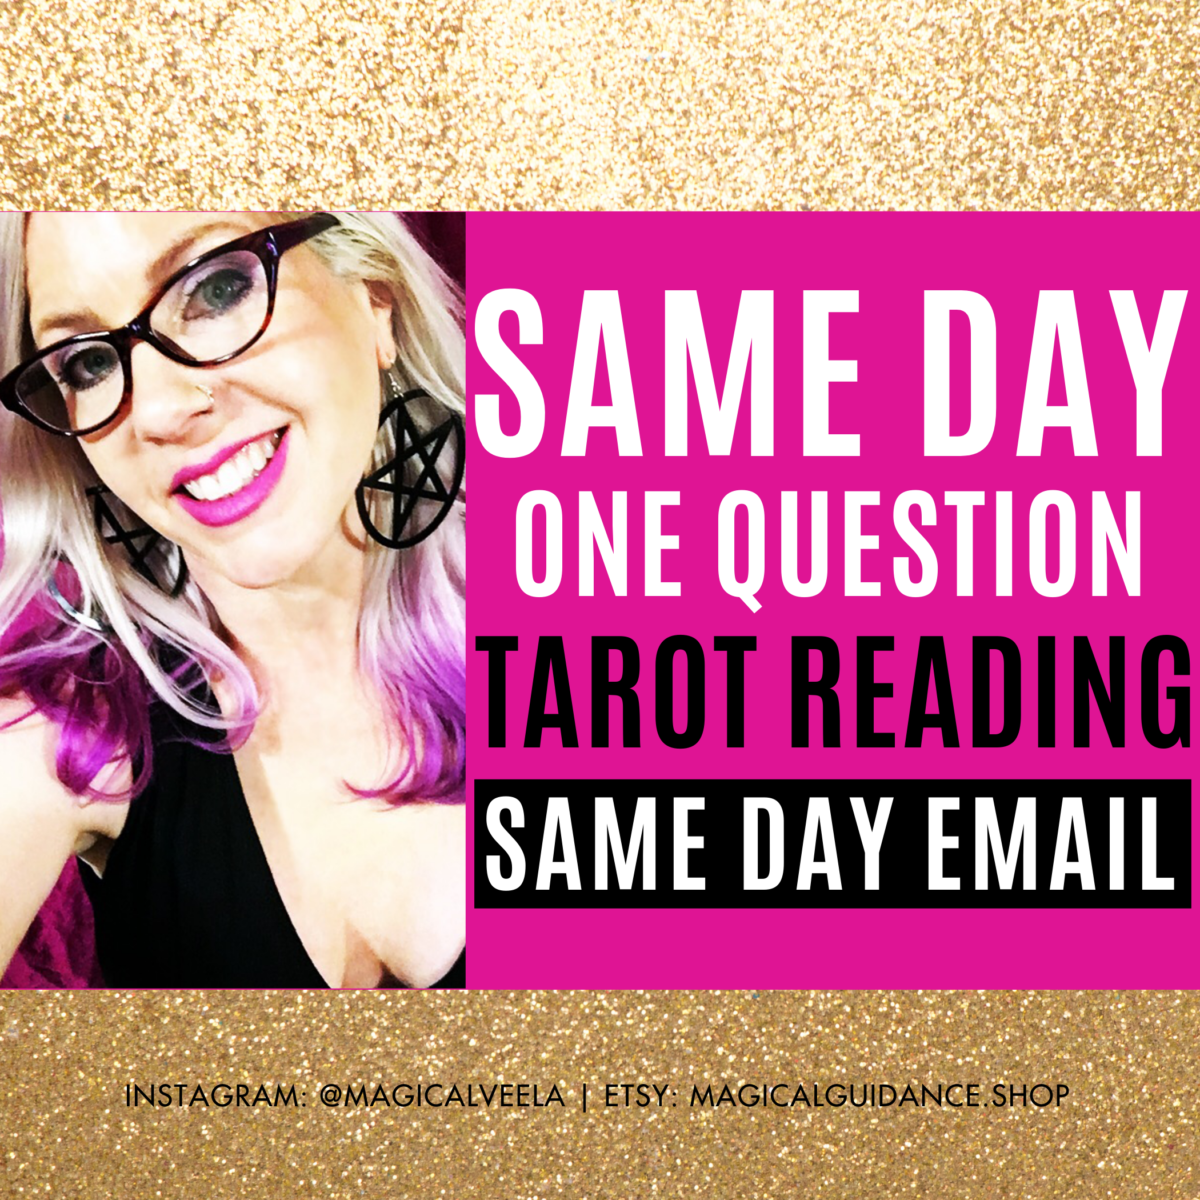 fast same day one question tarot reading psychic etsy | magicalguidance.com